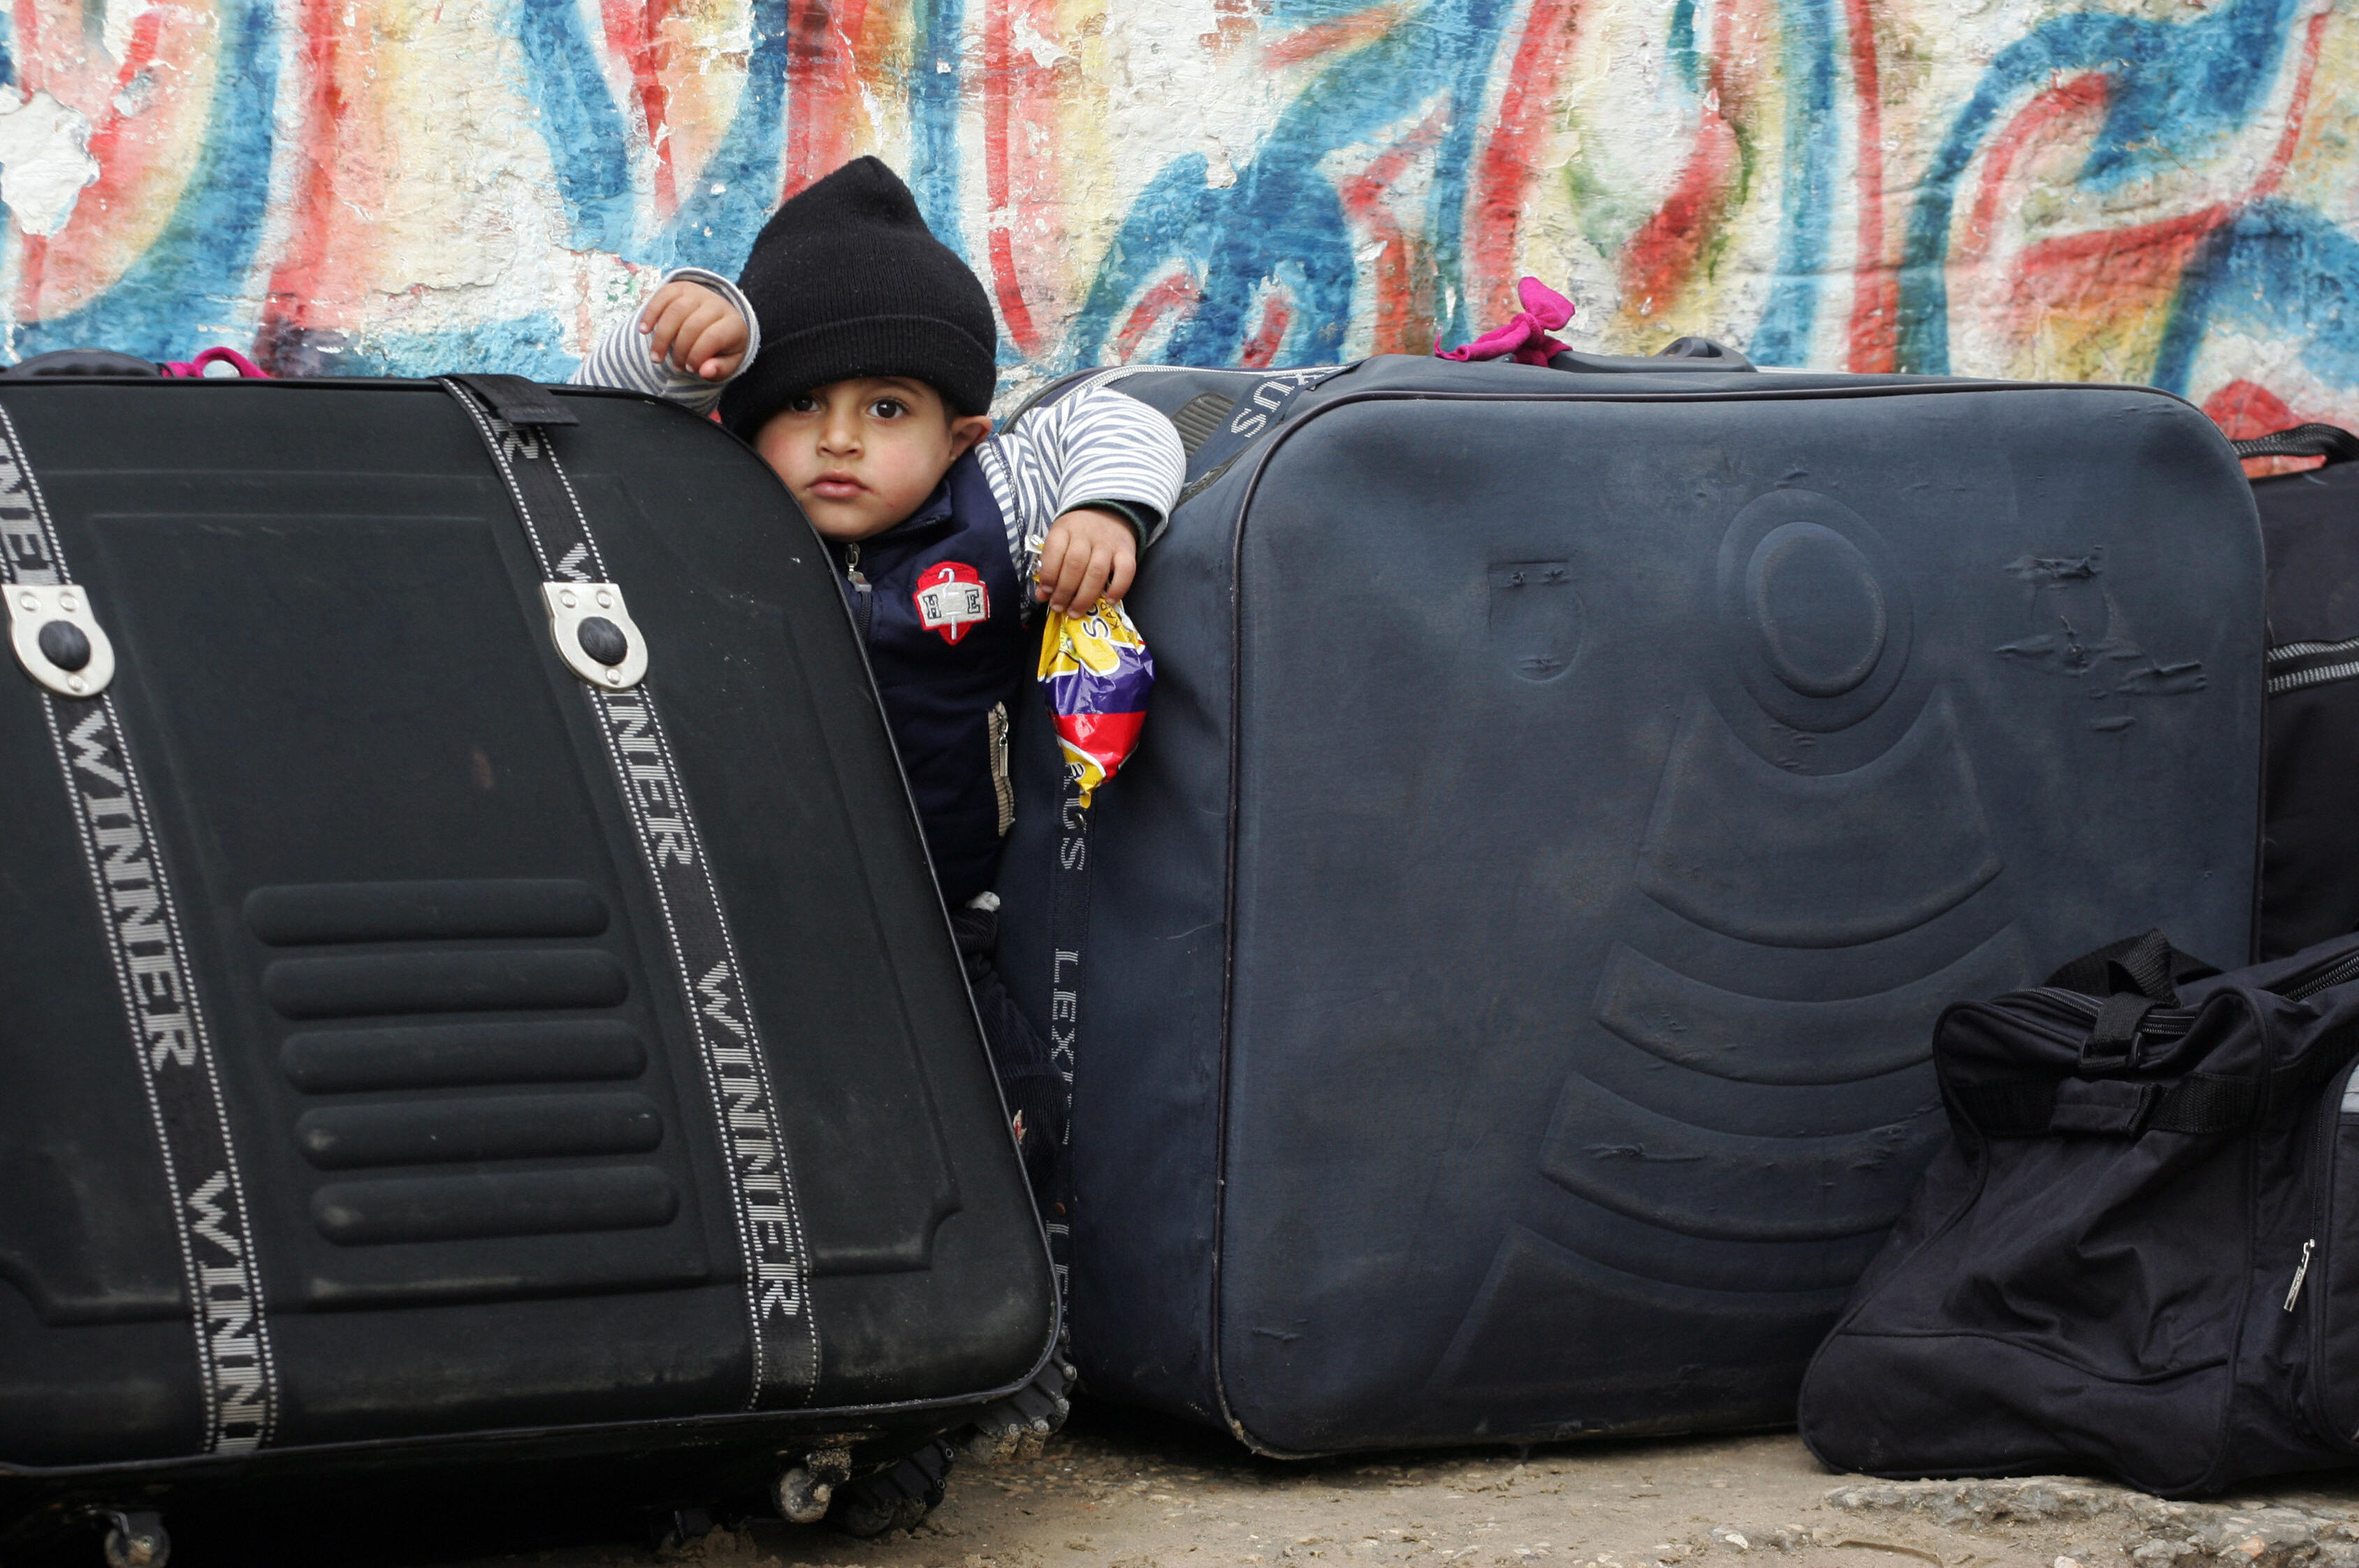 SAID KHATIB/AFP/Getty Images. A Palestinian toddler stands between suitcases he waits with family members to cross into Egypt from the southern Gaza Strip border crossing at Rafah. The border between Gaza and Egypt, the sole crossing that bypasses Israel, was opened on February 22 for three days to allow the passage of students and the sick.